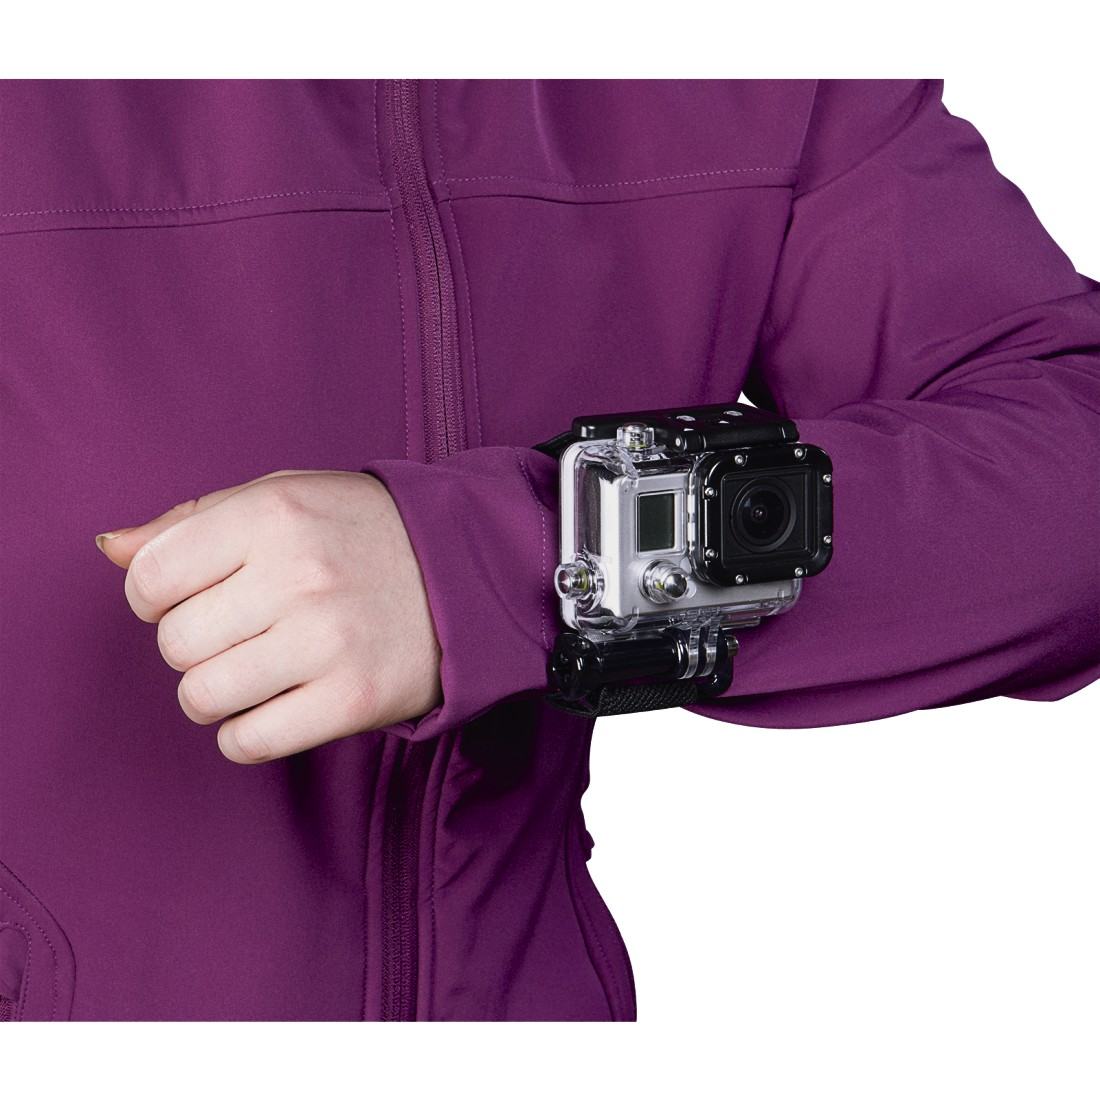 awx High-Res Appliance - Hama, Flex Wrist Strap for GoPro